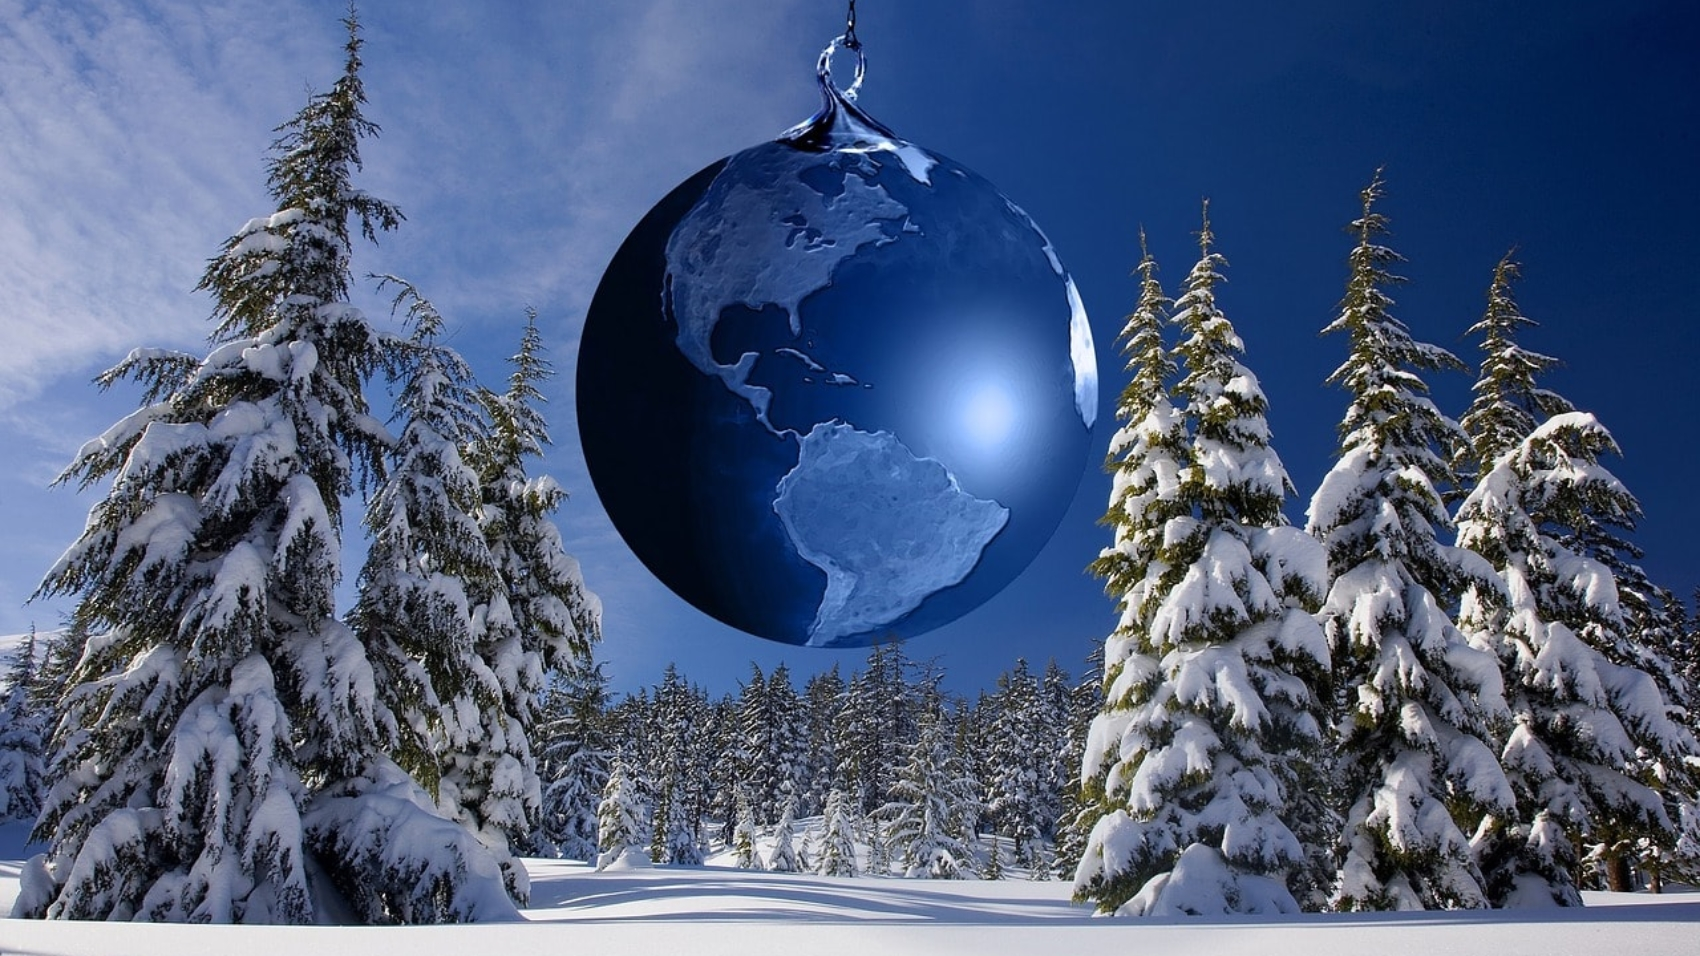 Christmas Celebrations in Multicultural Homes Around the World